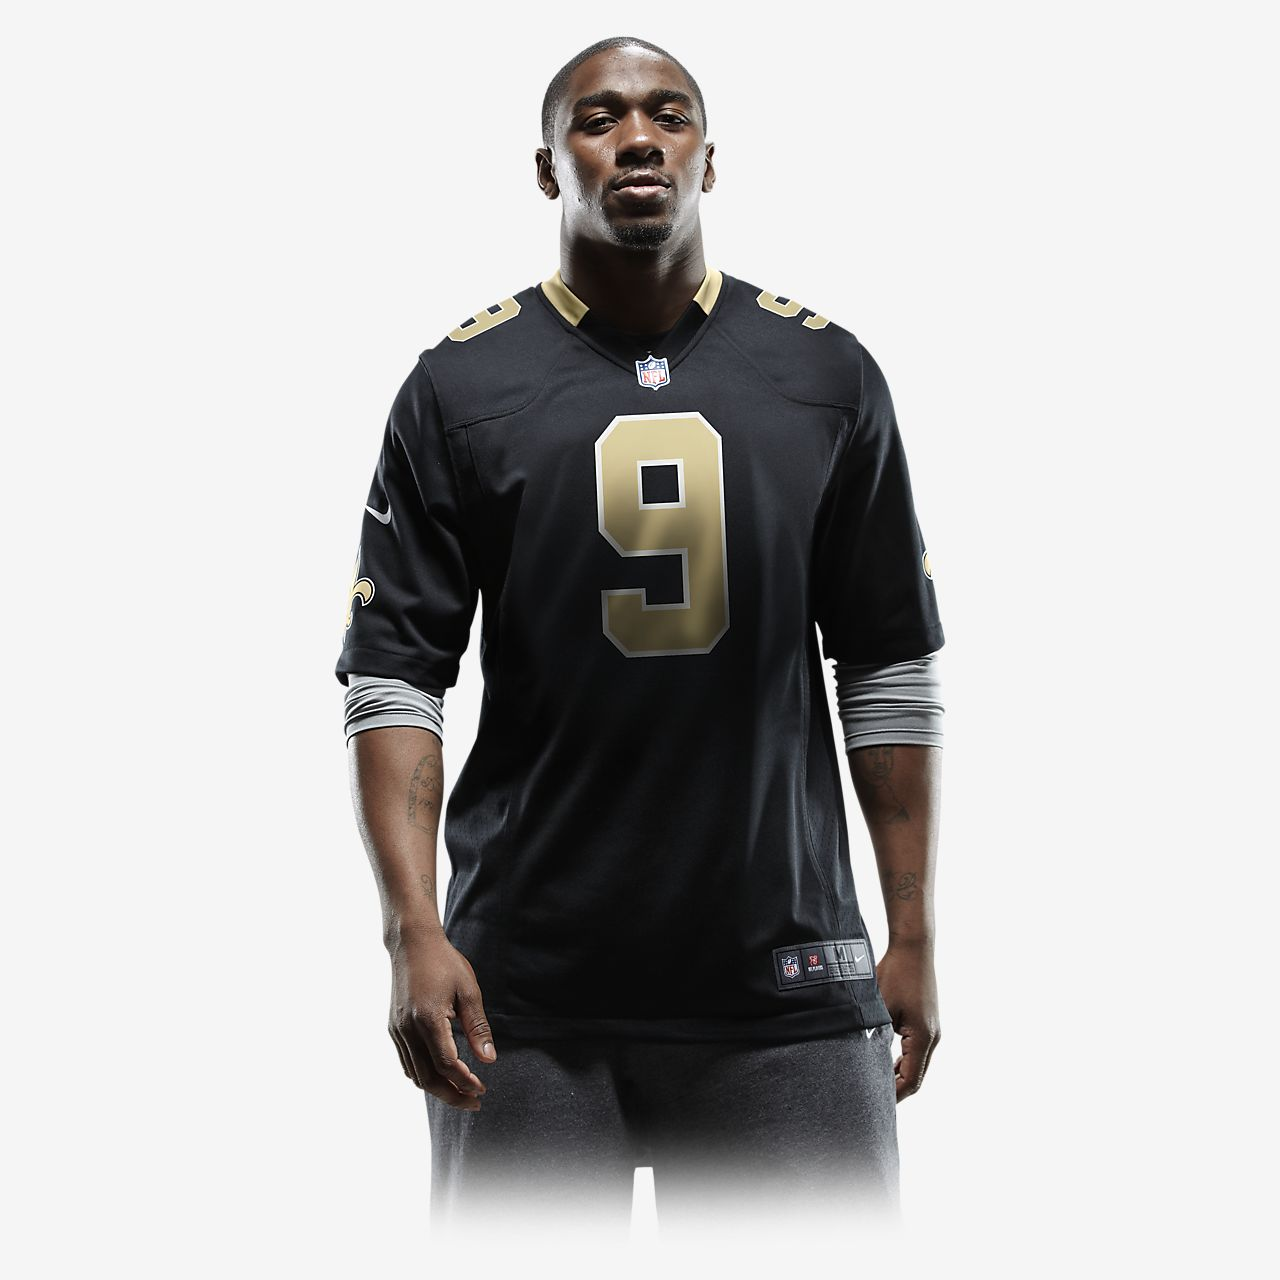 ... NFL New Orleans Saints (Drew Brees) Men s American Football Home Game  Jersey a52ee857d